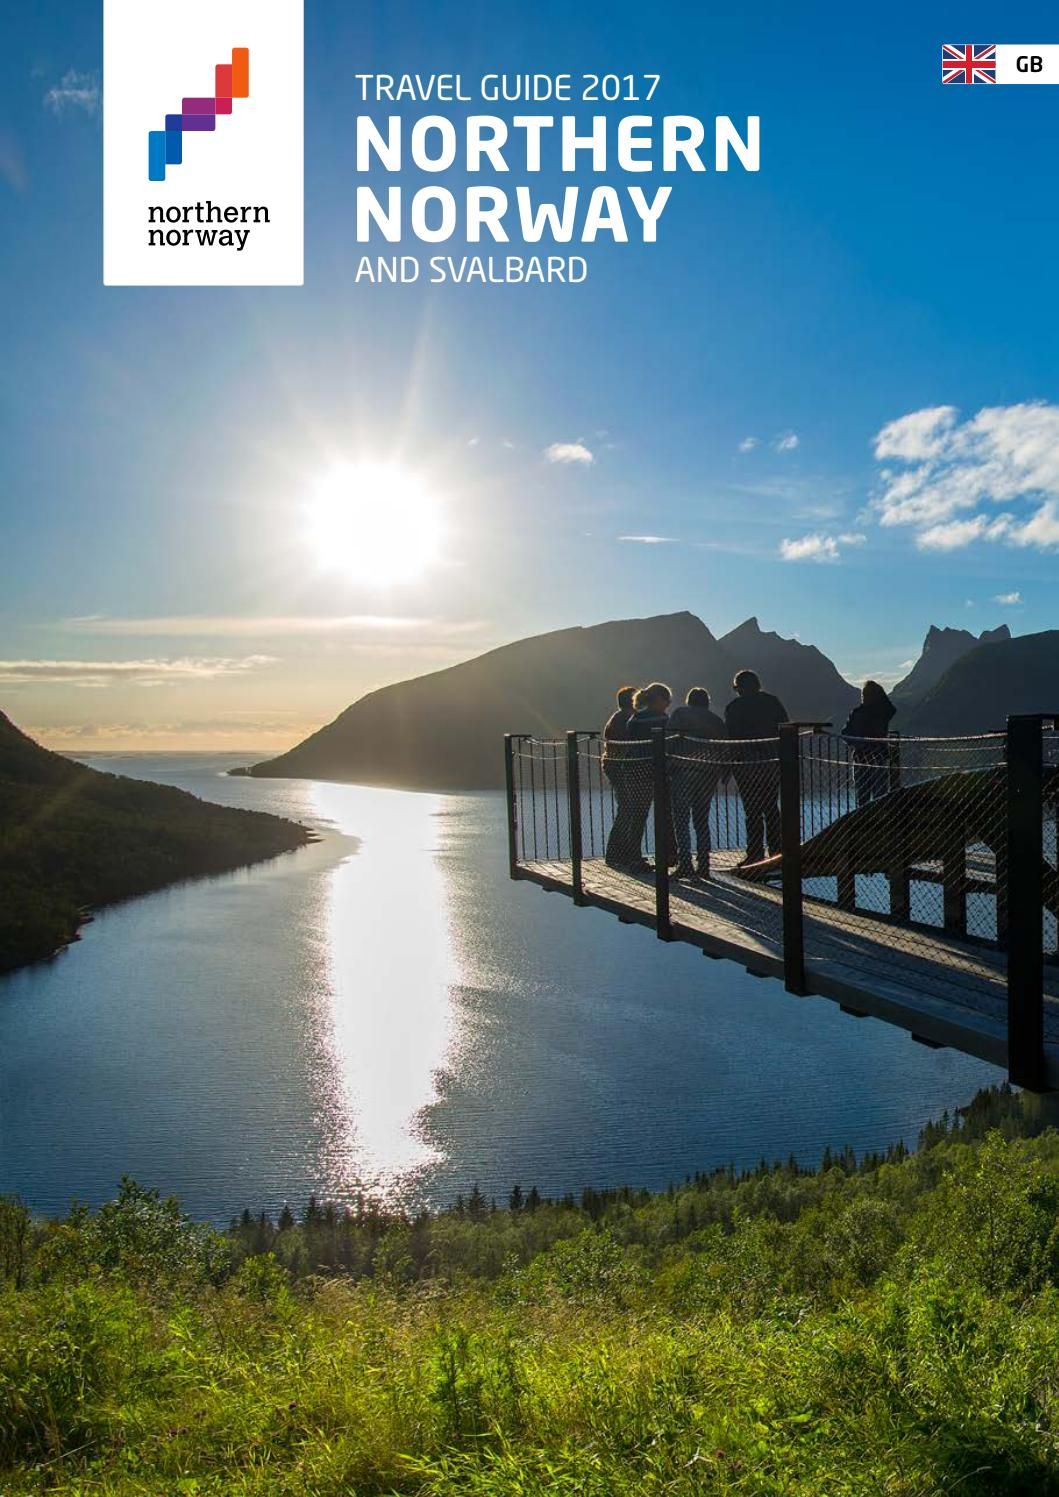 Travel Guide 2017 - ENGLISH by NordNorsk Reiseliv - issuu